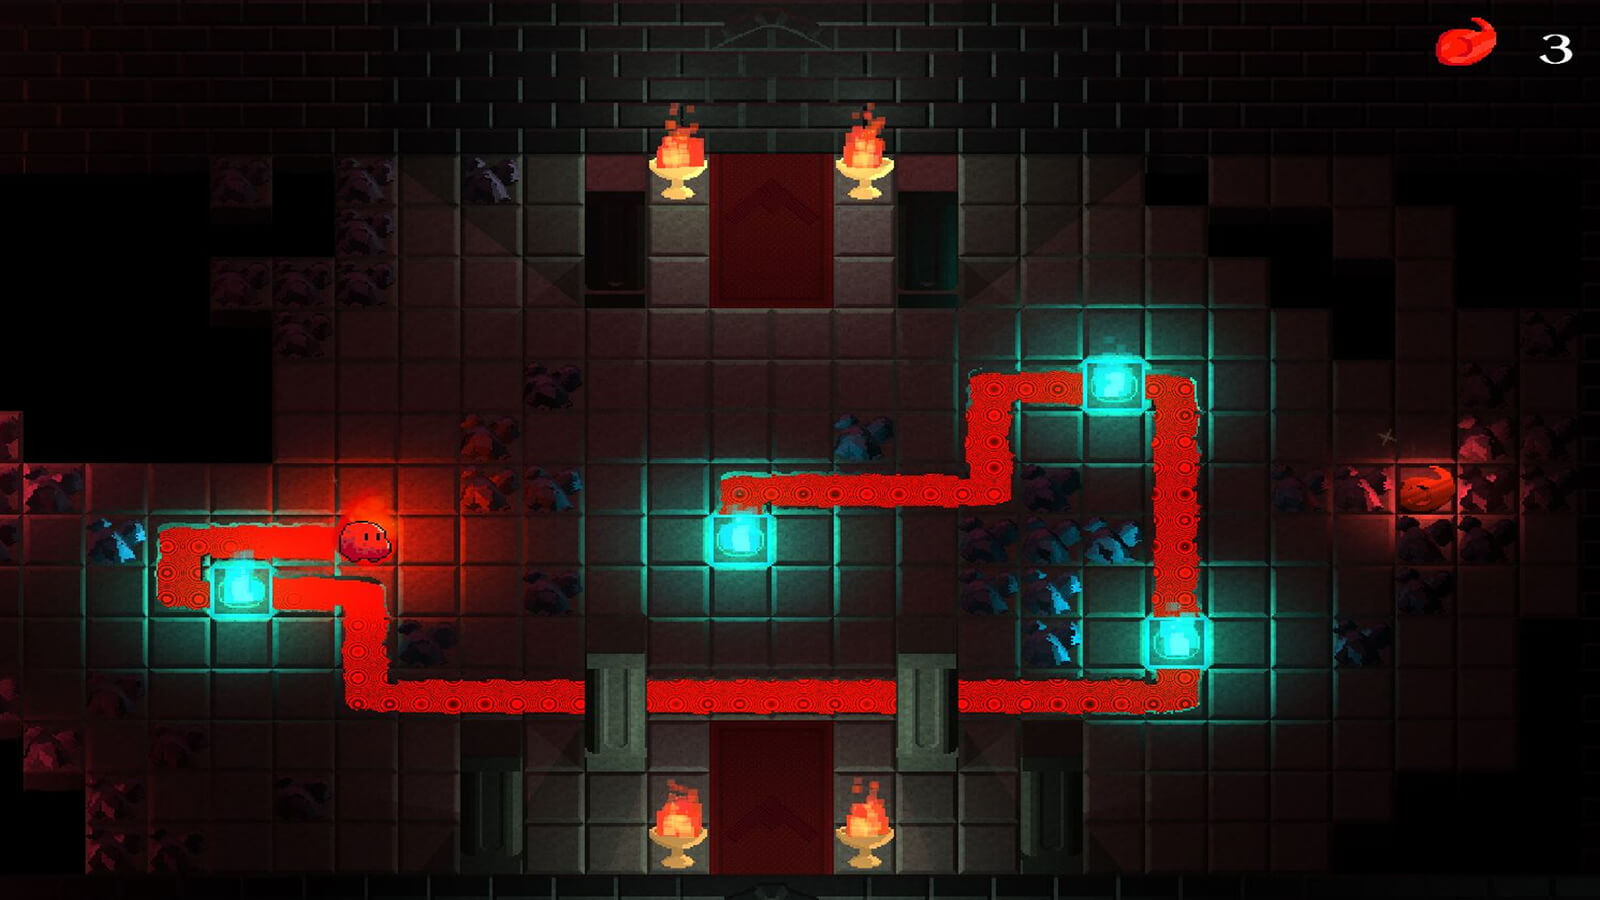 A red trail shows the path of a flame gooey as it moves through a gridded room.